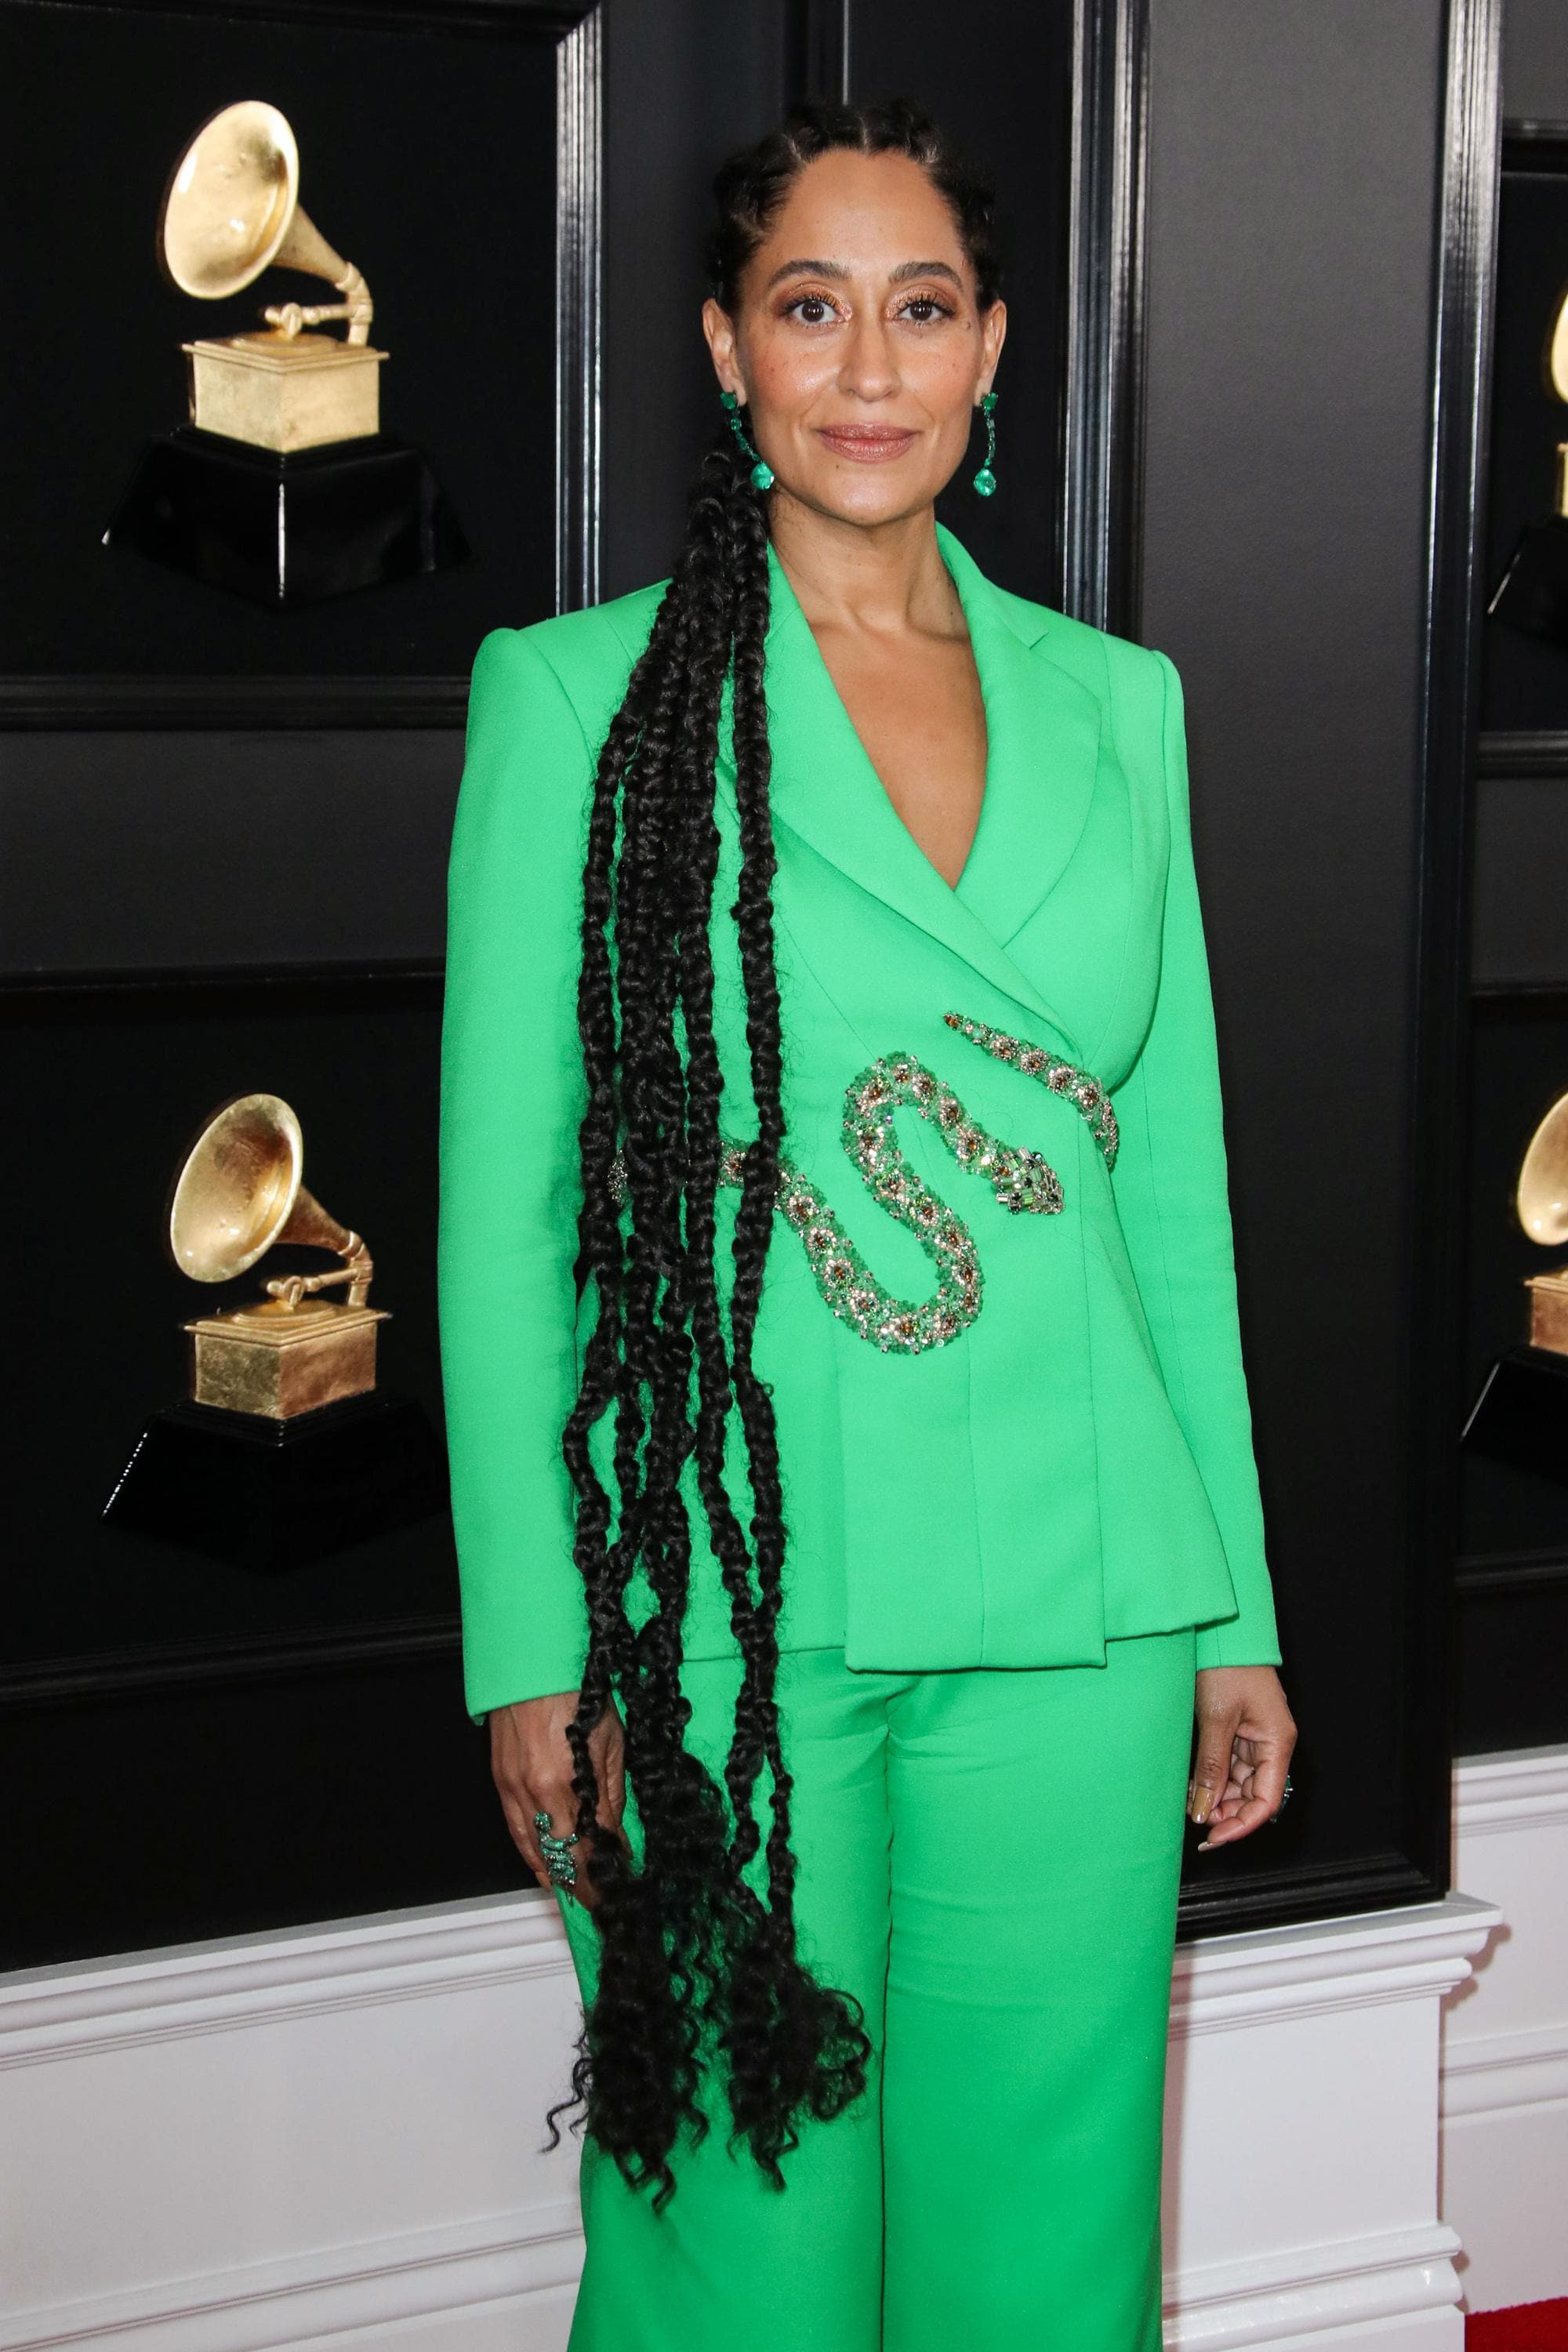 Red carpet hairstyles: Tracee Ellis Ross with very long braided hair wearing a green suit and snake belt at the Grammy Awards 2019 red carpet.